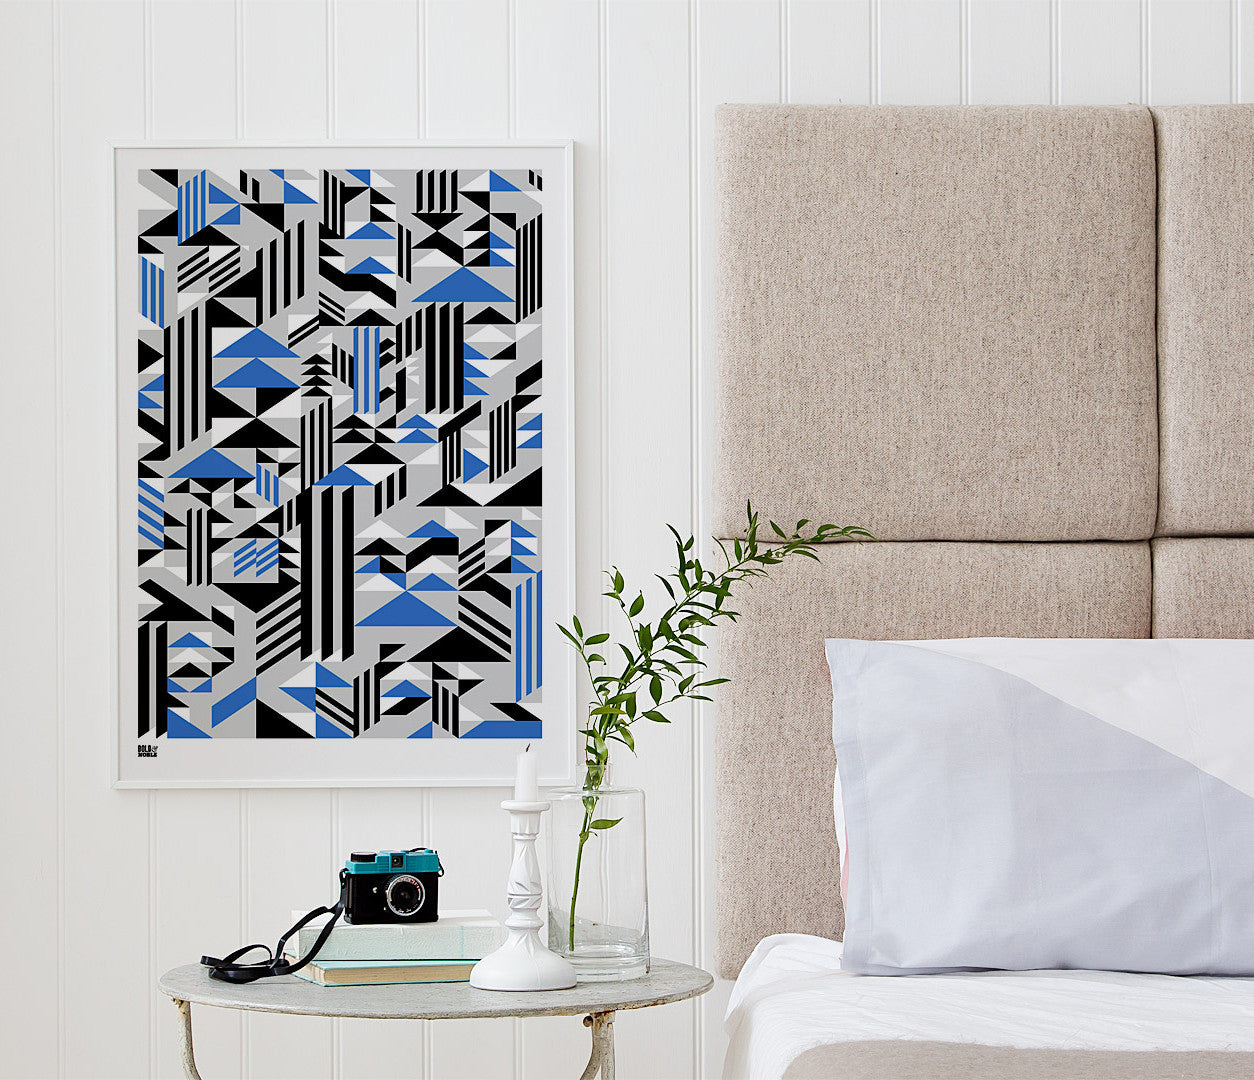 Wall Art ideas: Economical Screen Prints, Higher Geometric Screen Print in blue and grey